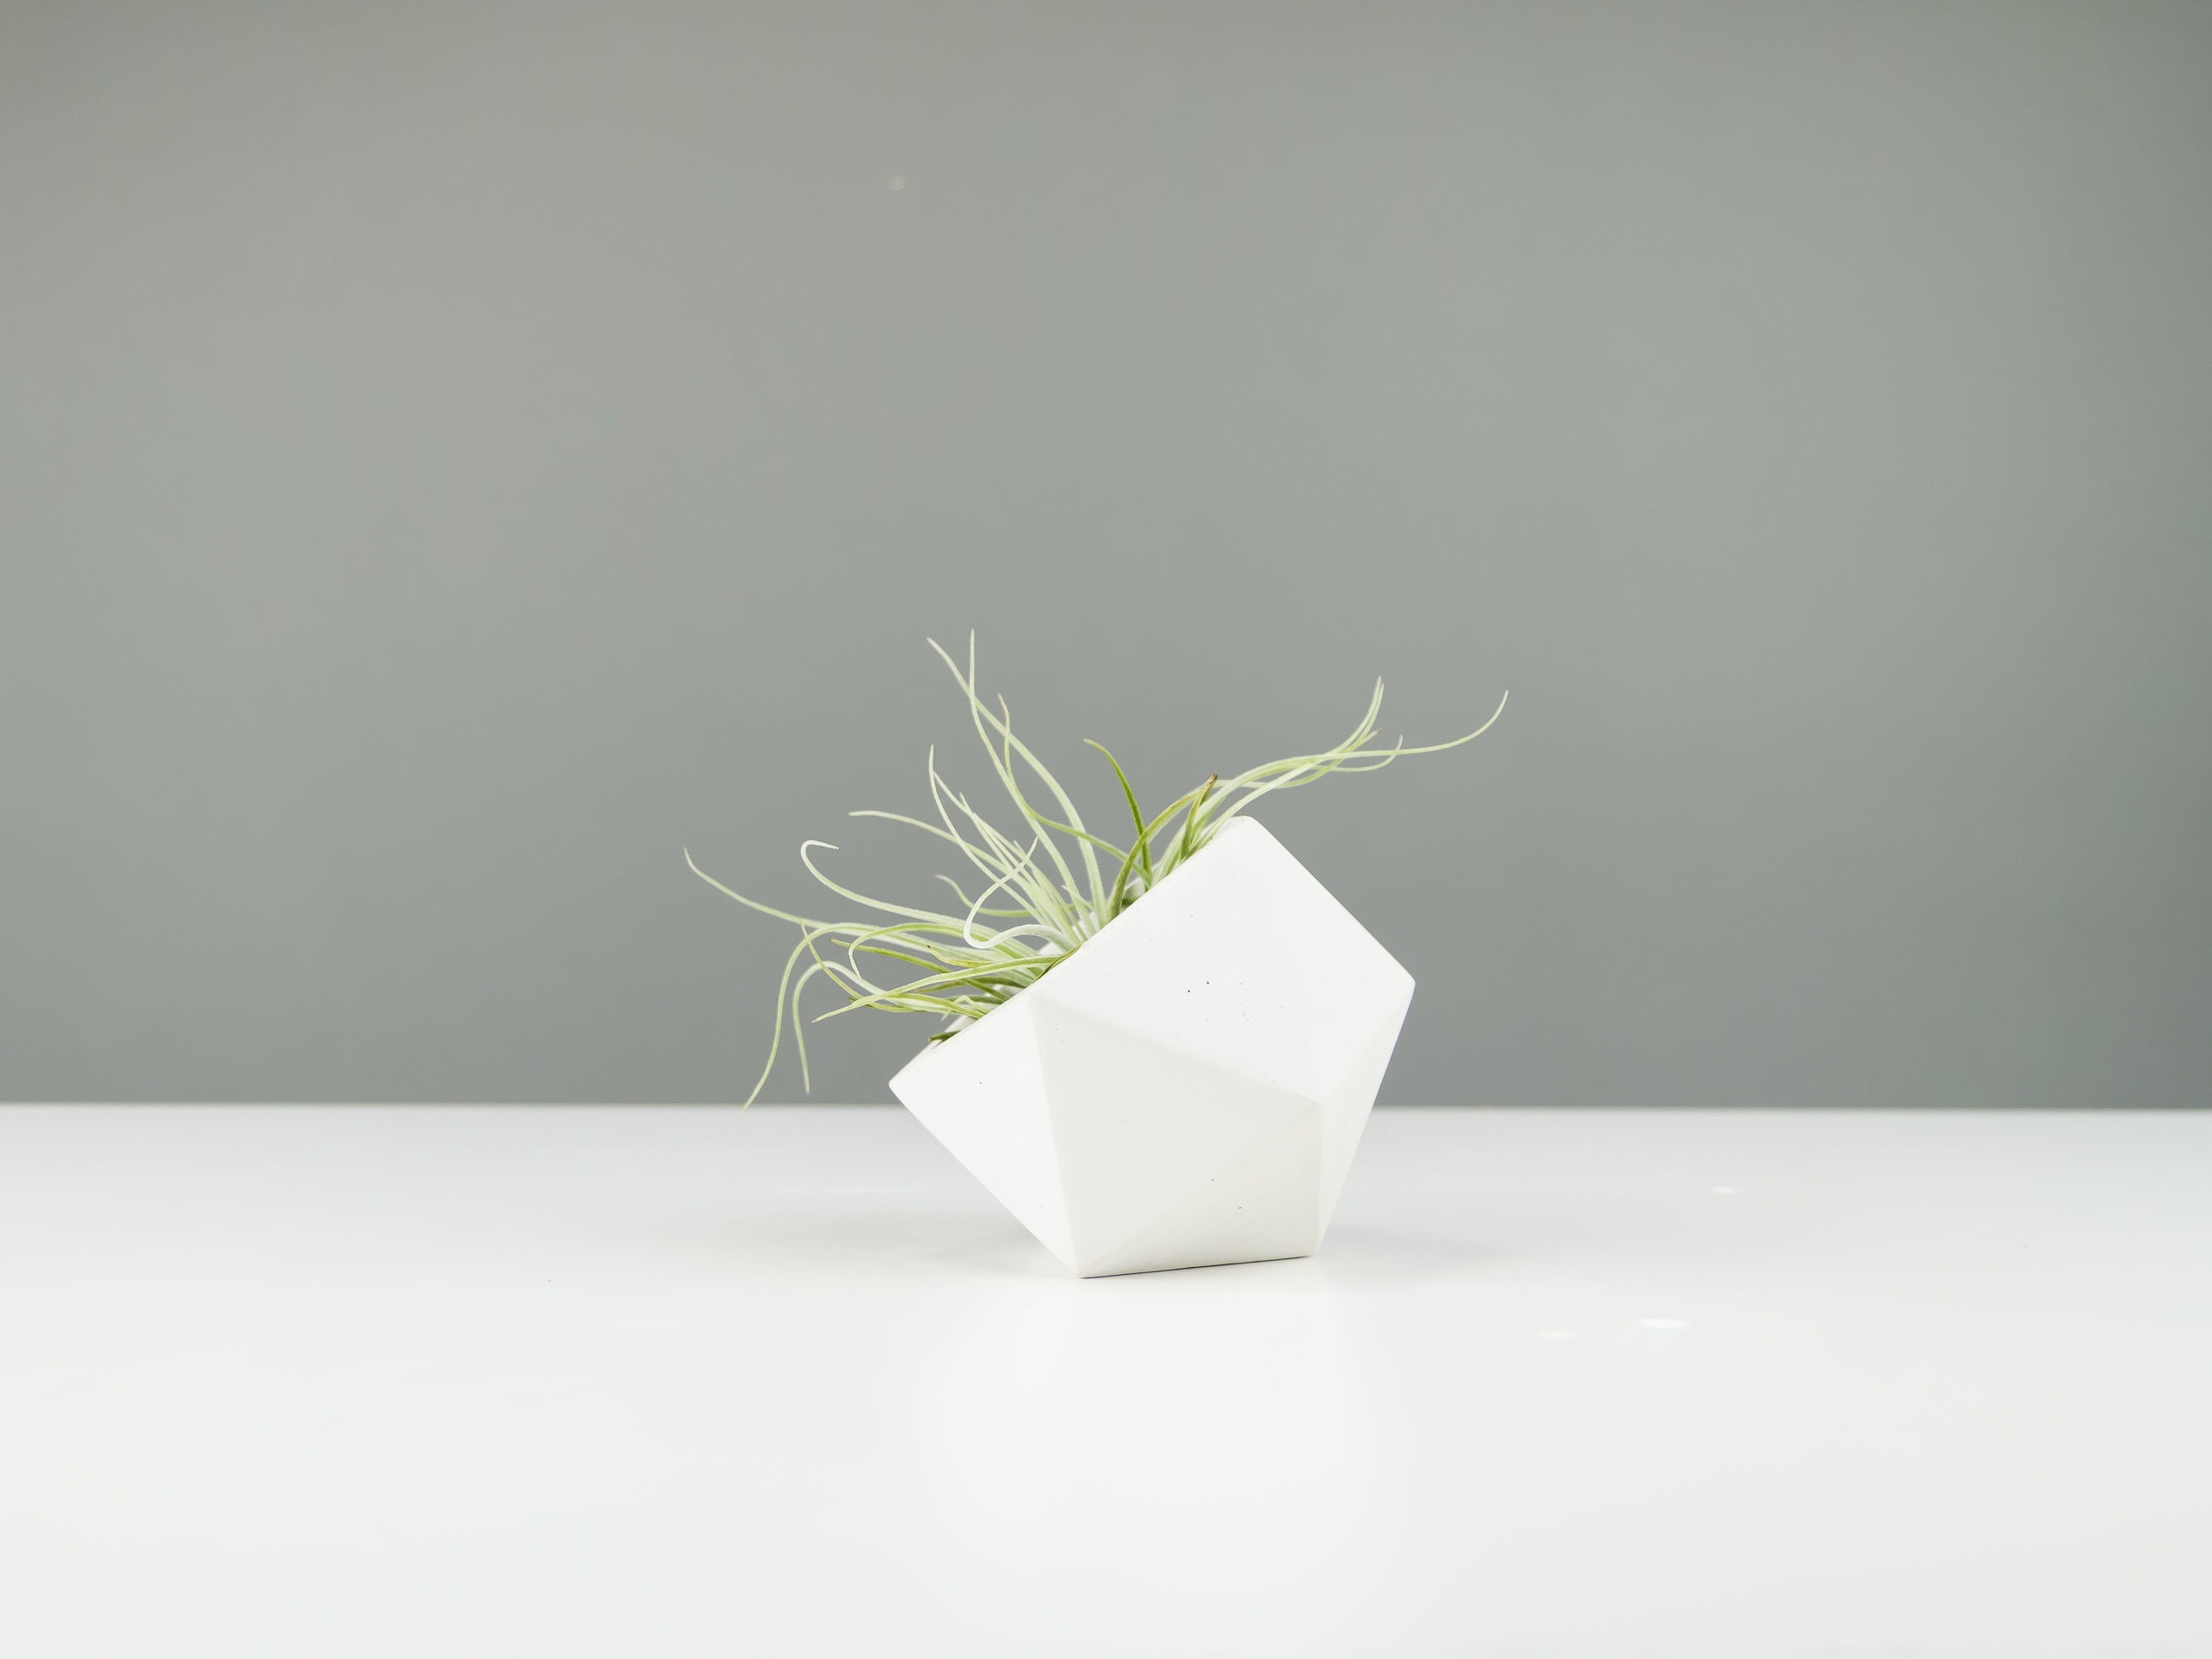 Minimal Gray Concrete Planter for Air Plants by the Savvy HEart